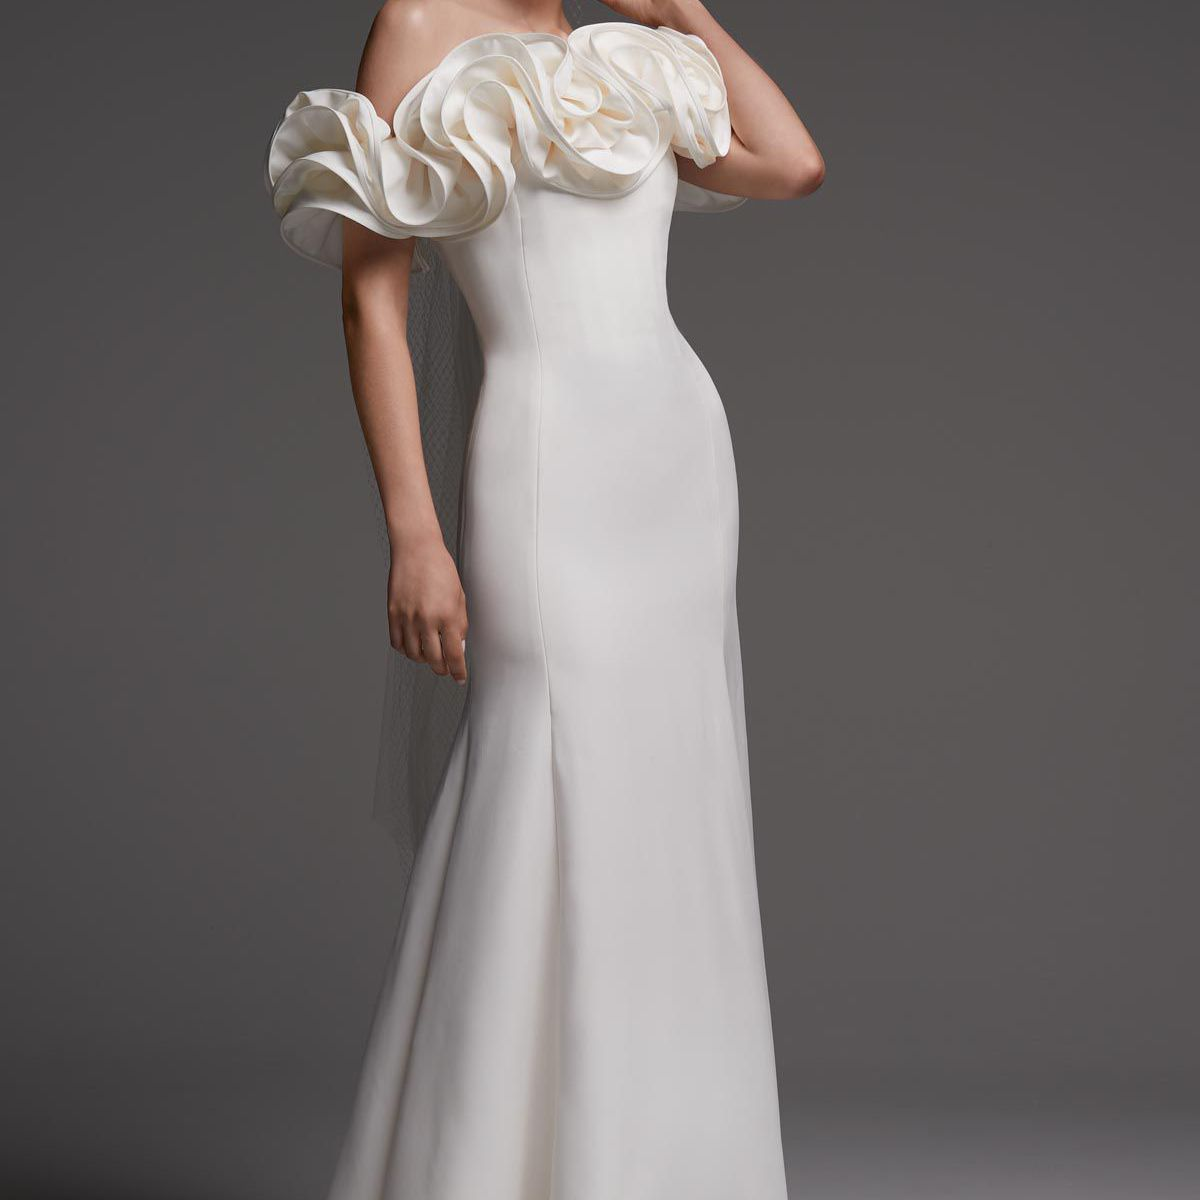 Model in sheath gown with oversized off-the-shoulder interlacing ruffles